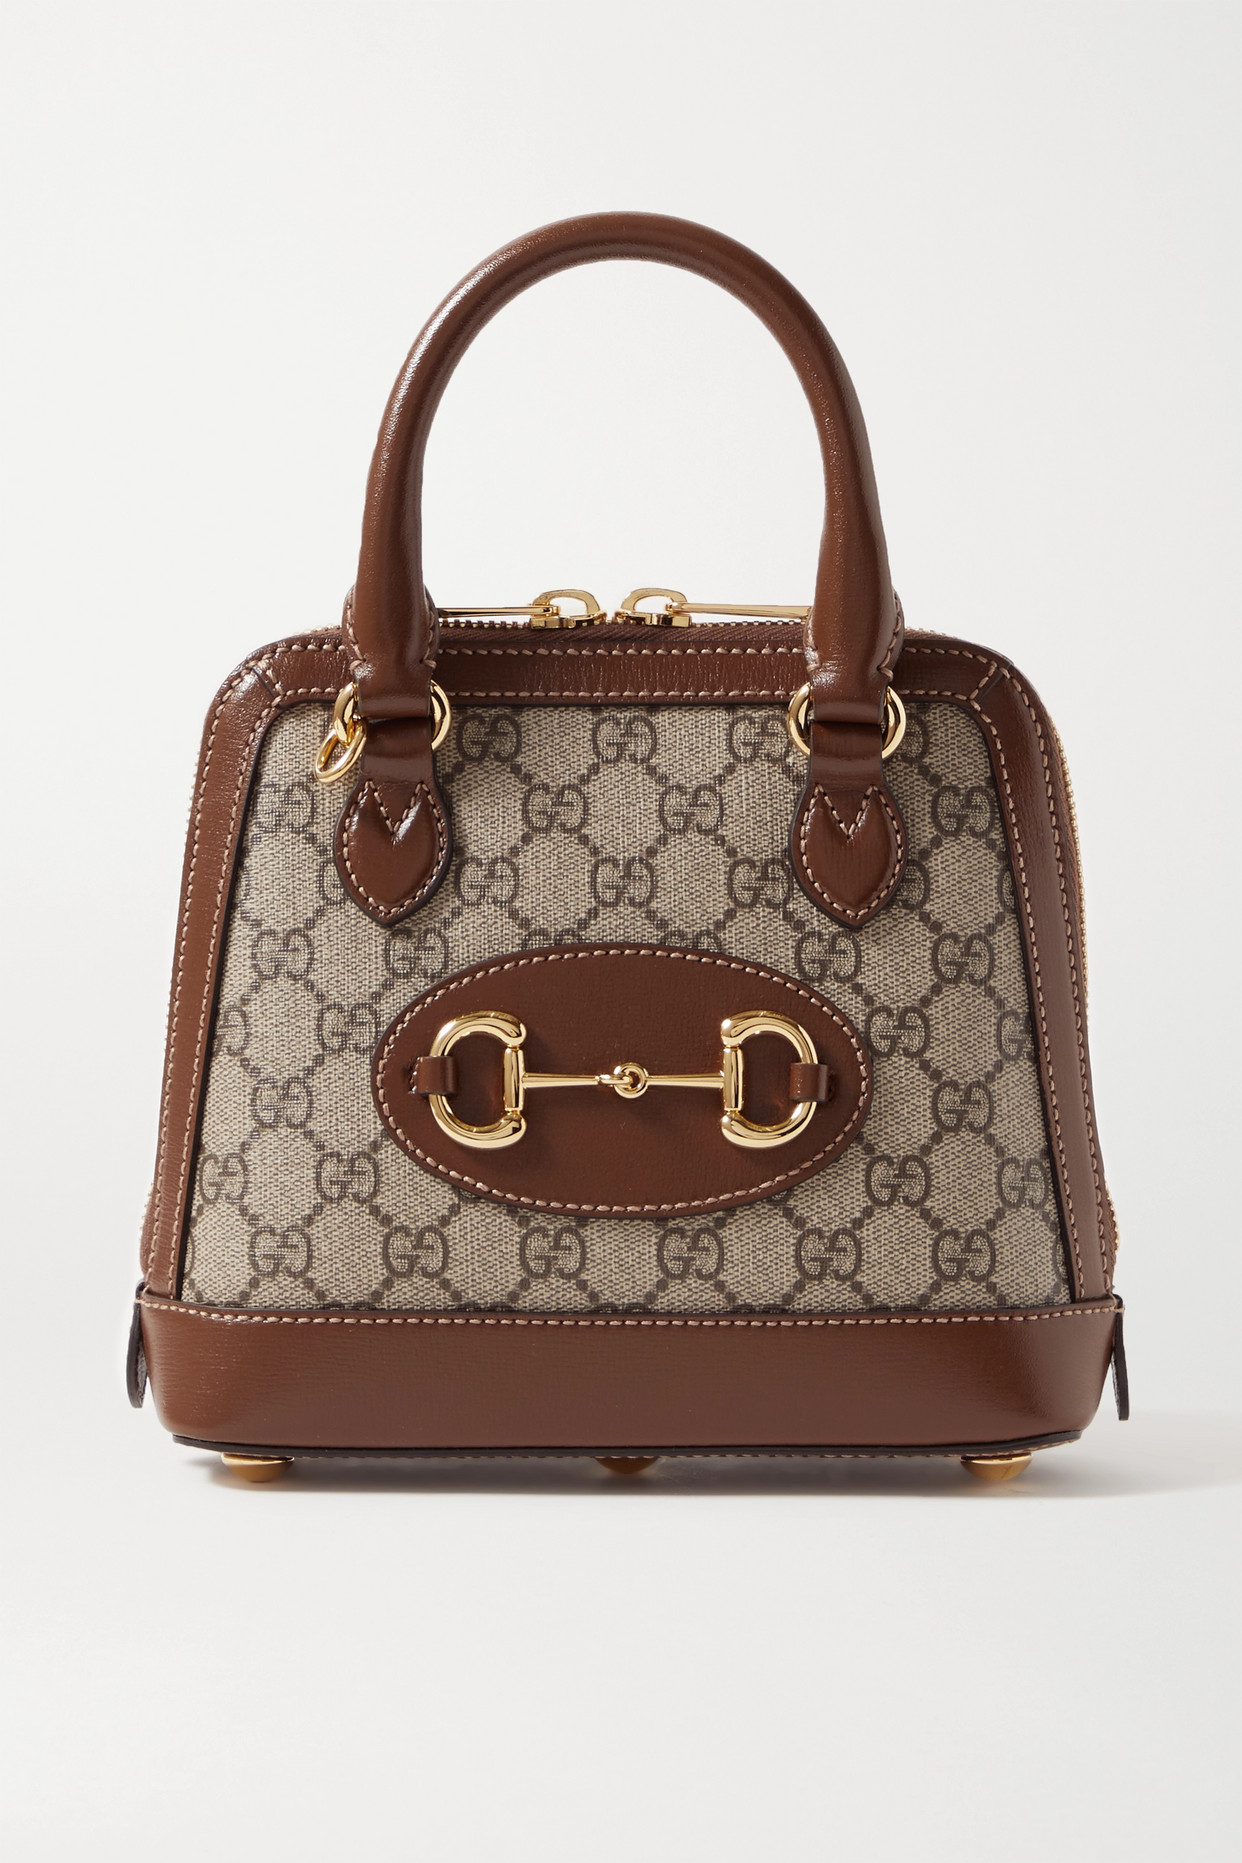 GUCCI - Horsebit 1955 Mini Leather-trimmed Printed Coated-canvas Tote - Neutrals - one size